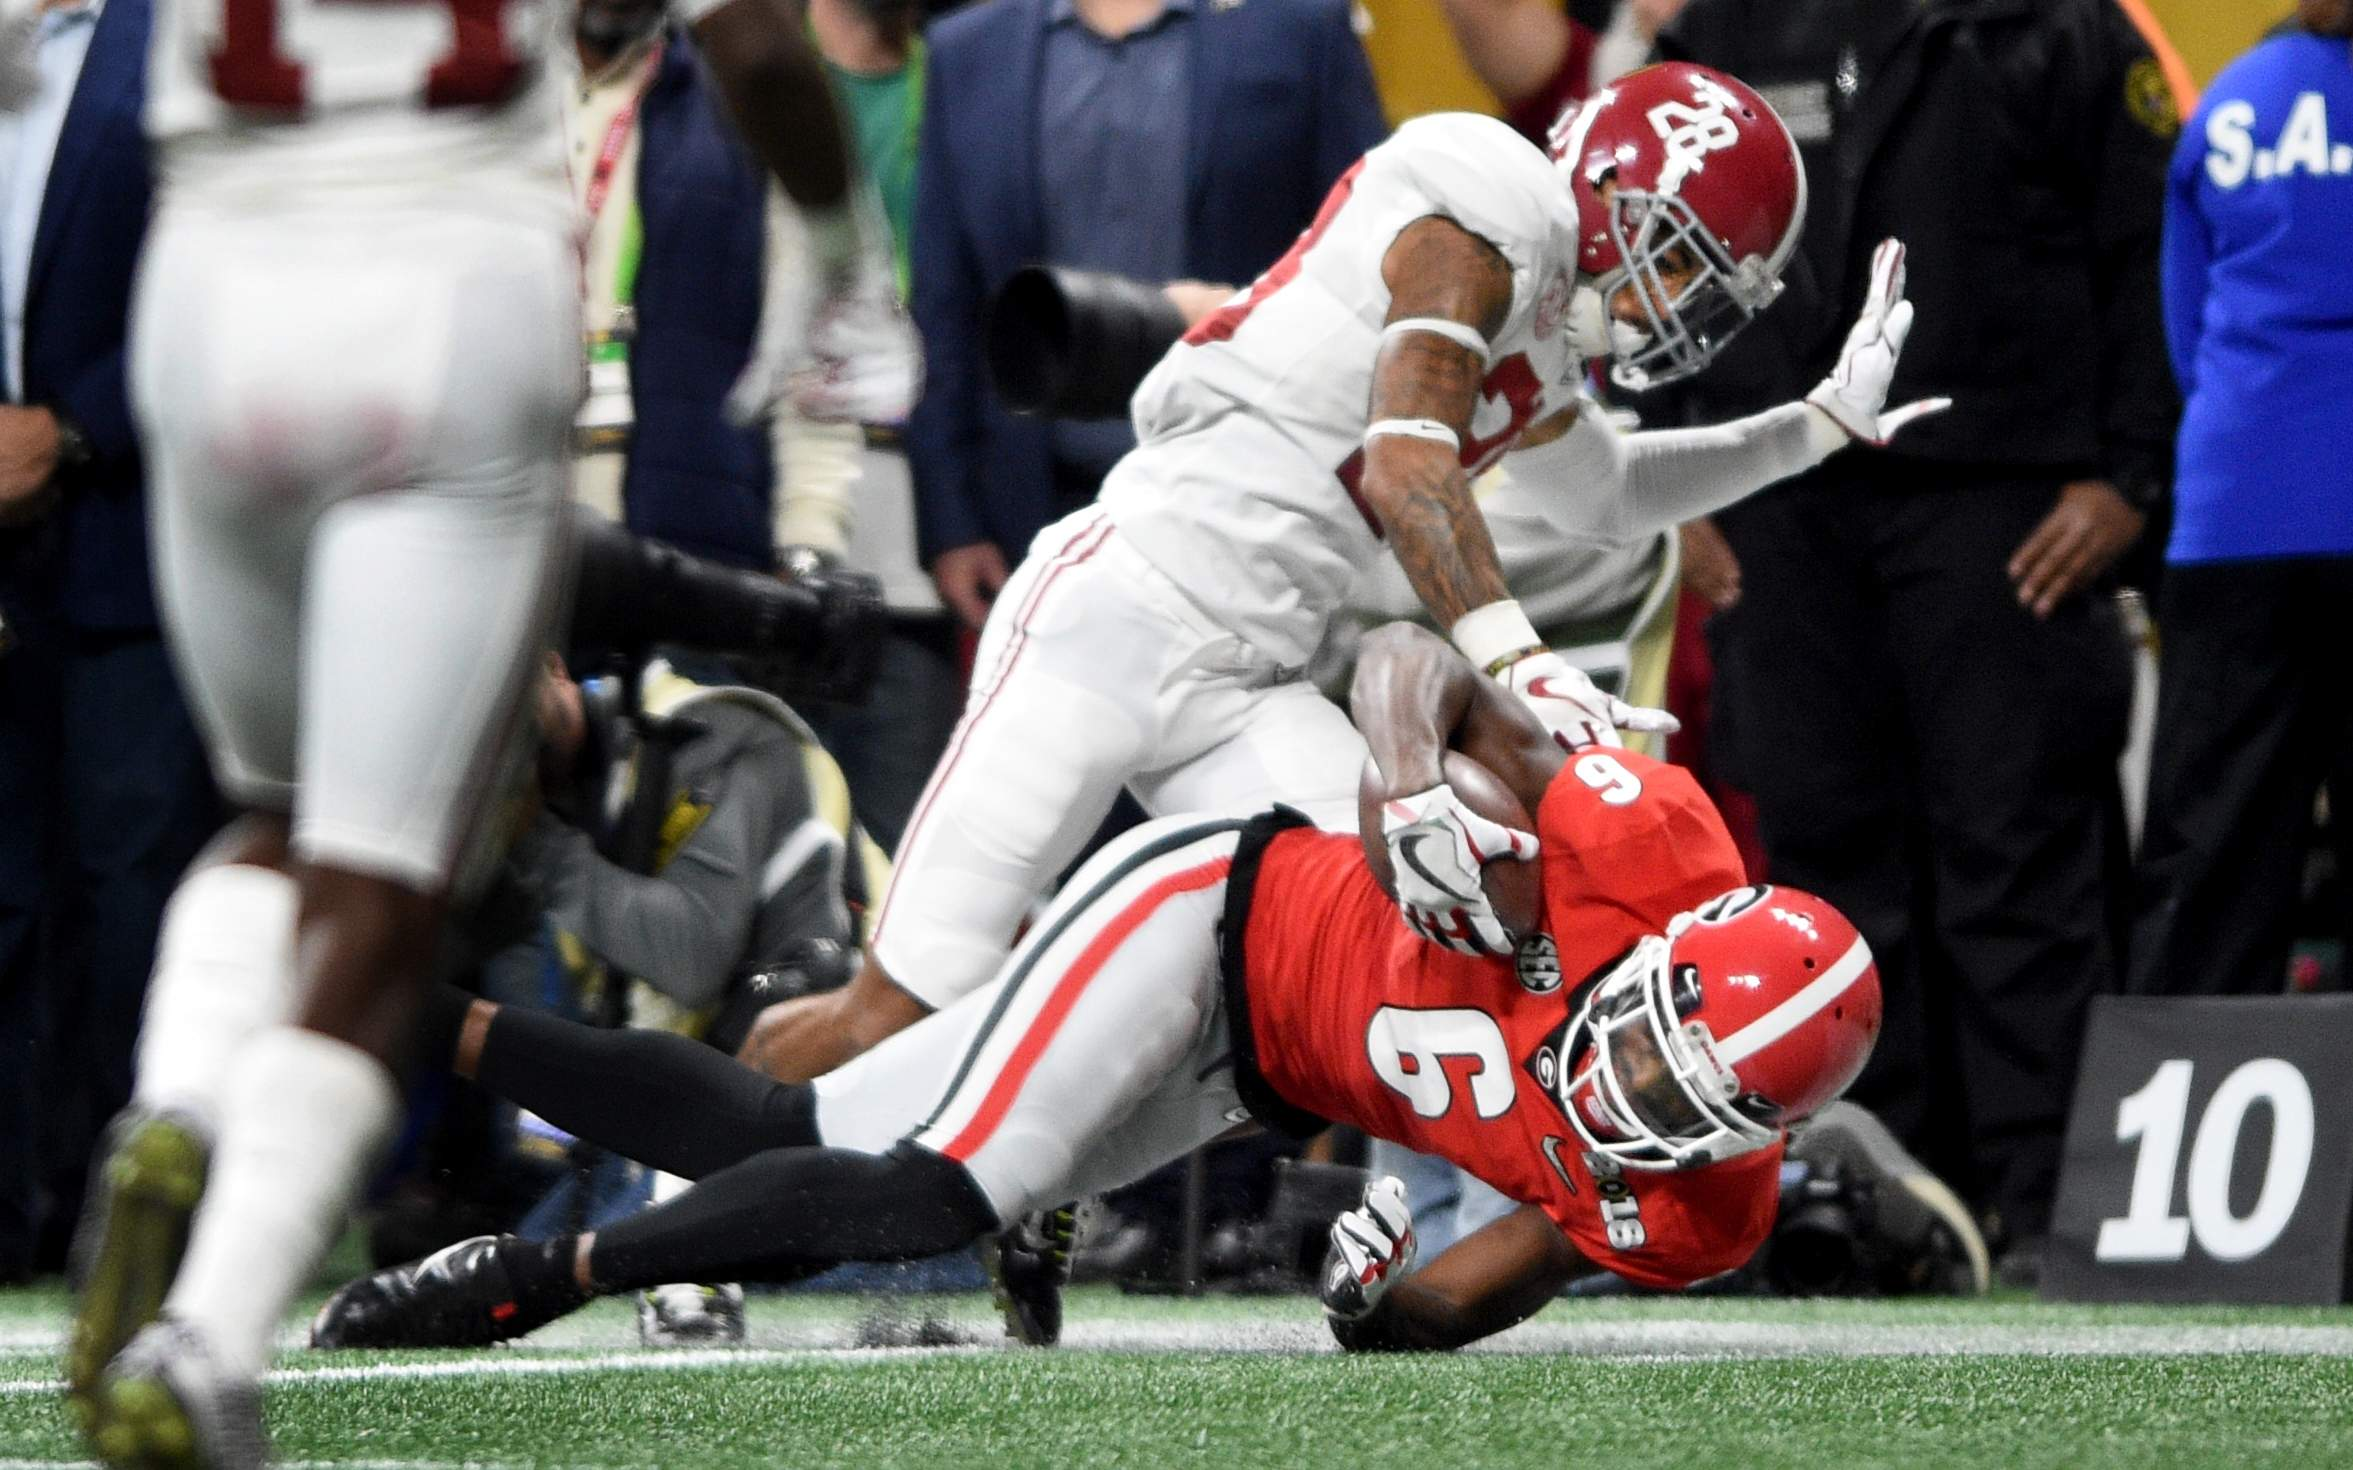 Georgia's Javon Wims comes down with a pass against Alabama's Anthony Averett to set up a second quarter field goal during the 2018 College Football Playoff National Championship at Mercedes-Benz Stadium in Atlanta, Ga., Monday evening January 8, 2018. MICHAEL HOLAHAN/AUGUSTA CHRONICLE